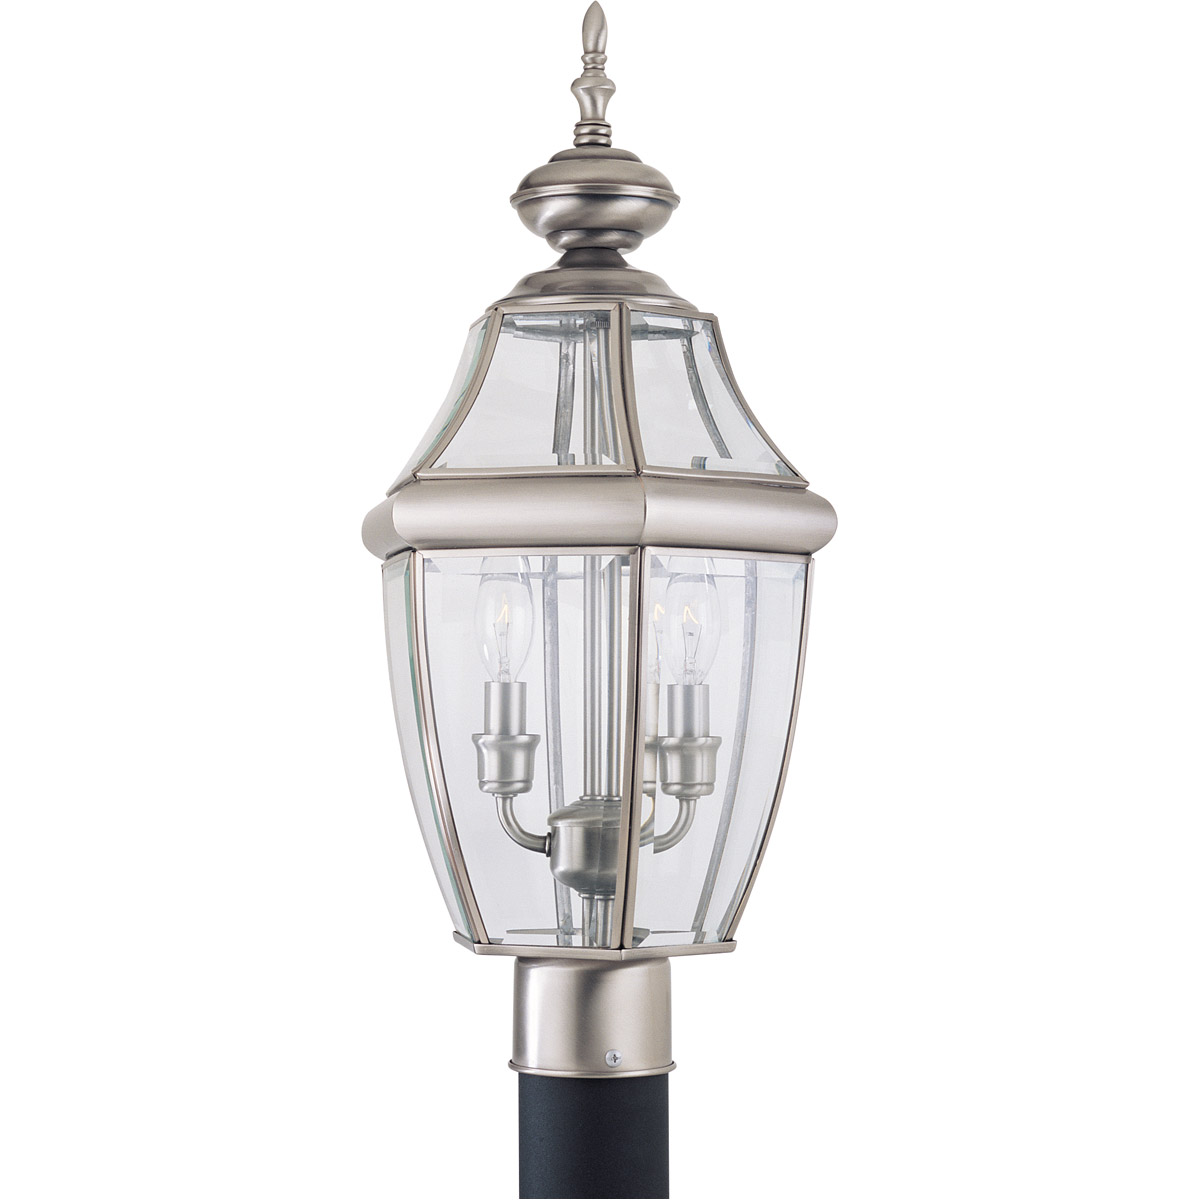 Sea Gull Lighting Lancaster 2 Light Outdoor Post Lantern in Antique Brushed Nickel 8229-965 photo